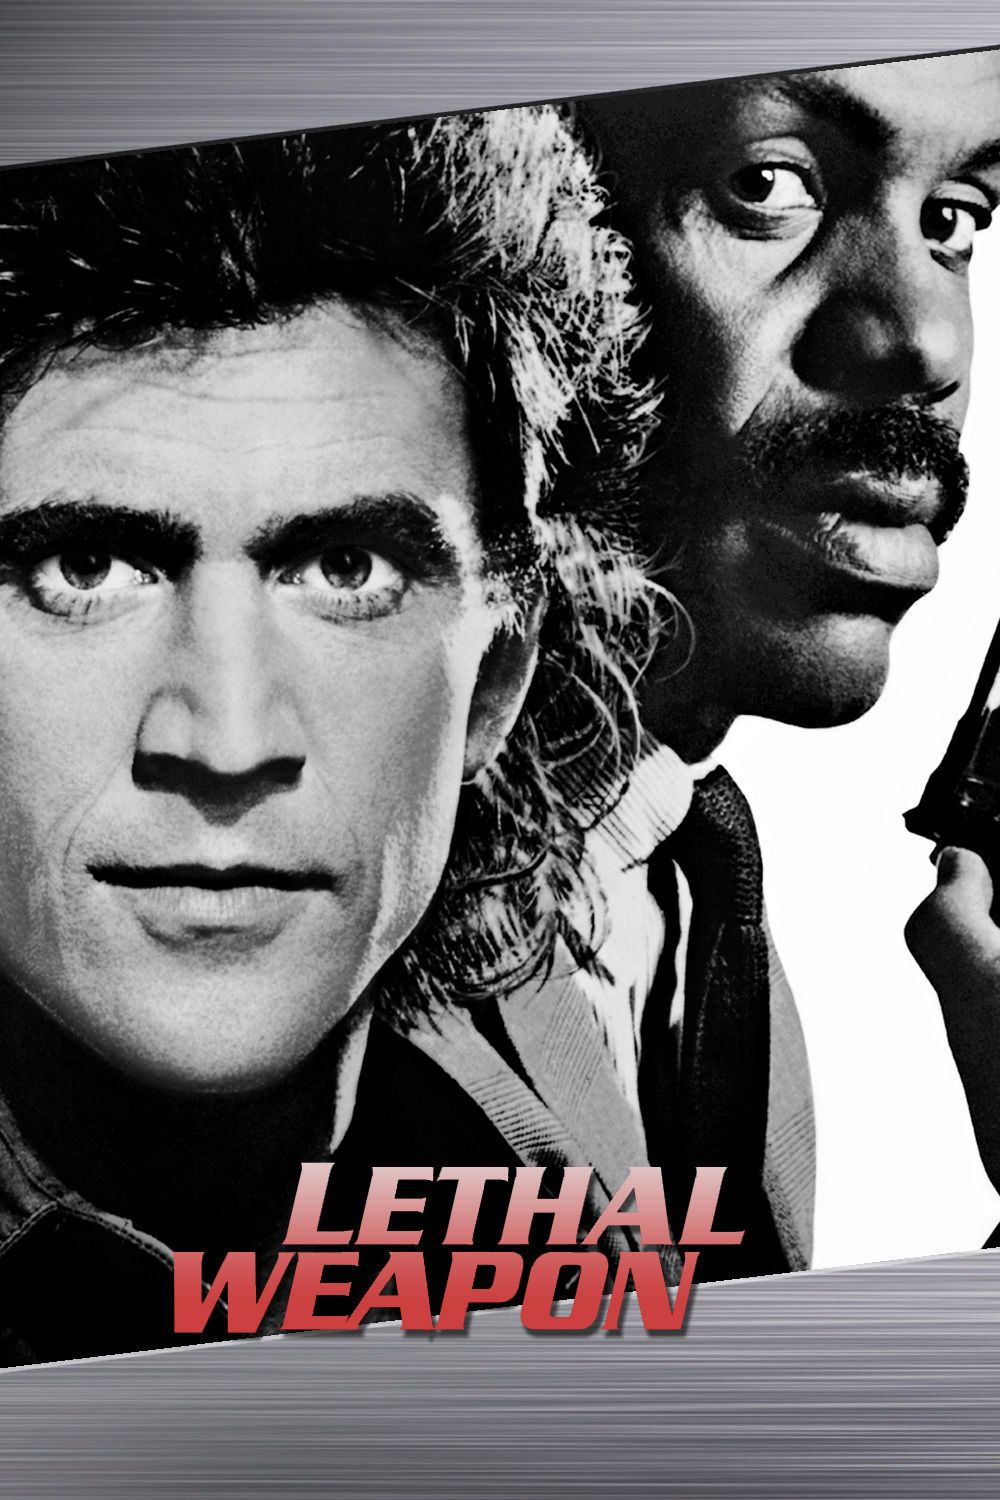 Lethal Weapon 1 [1987] Full Movie Download